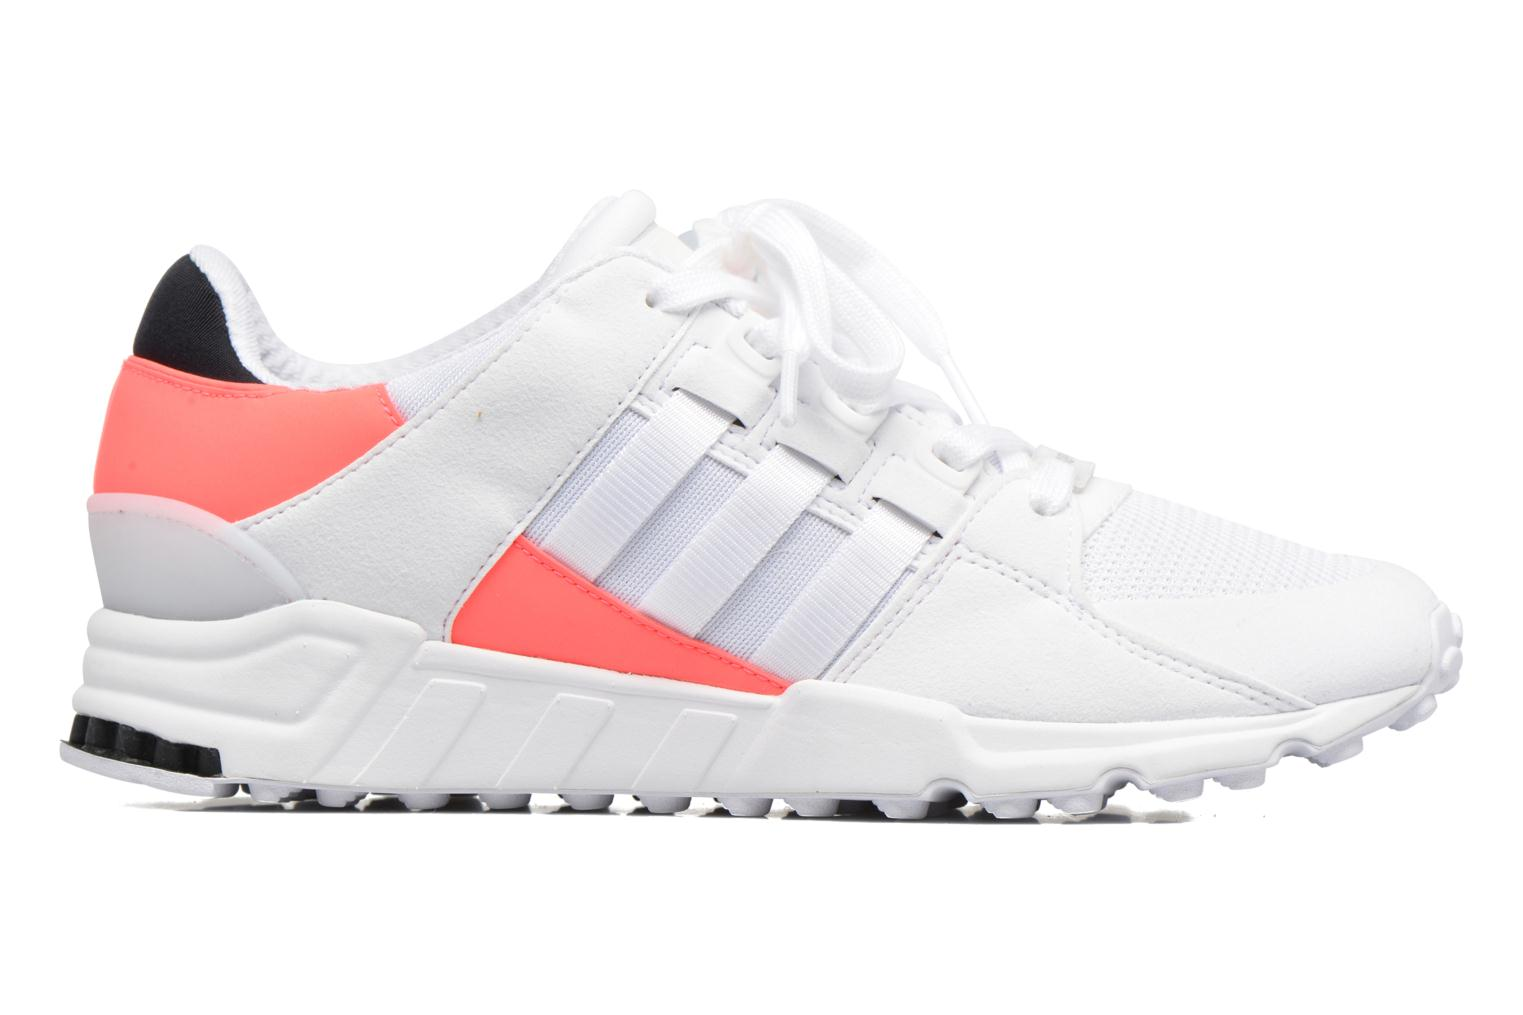 Eqt Support Rf Ftwbla/Ftwbla/Turbo